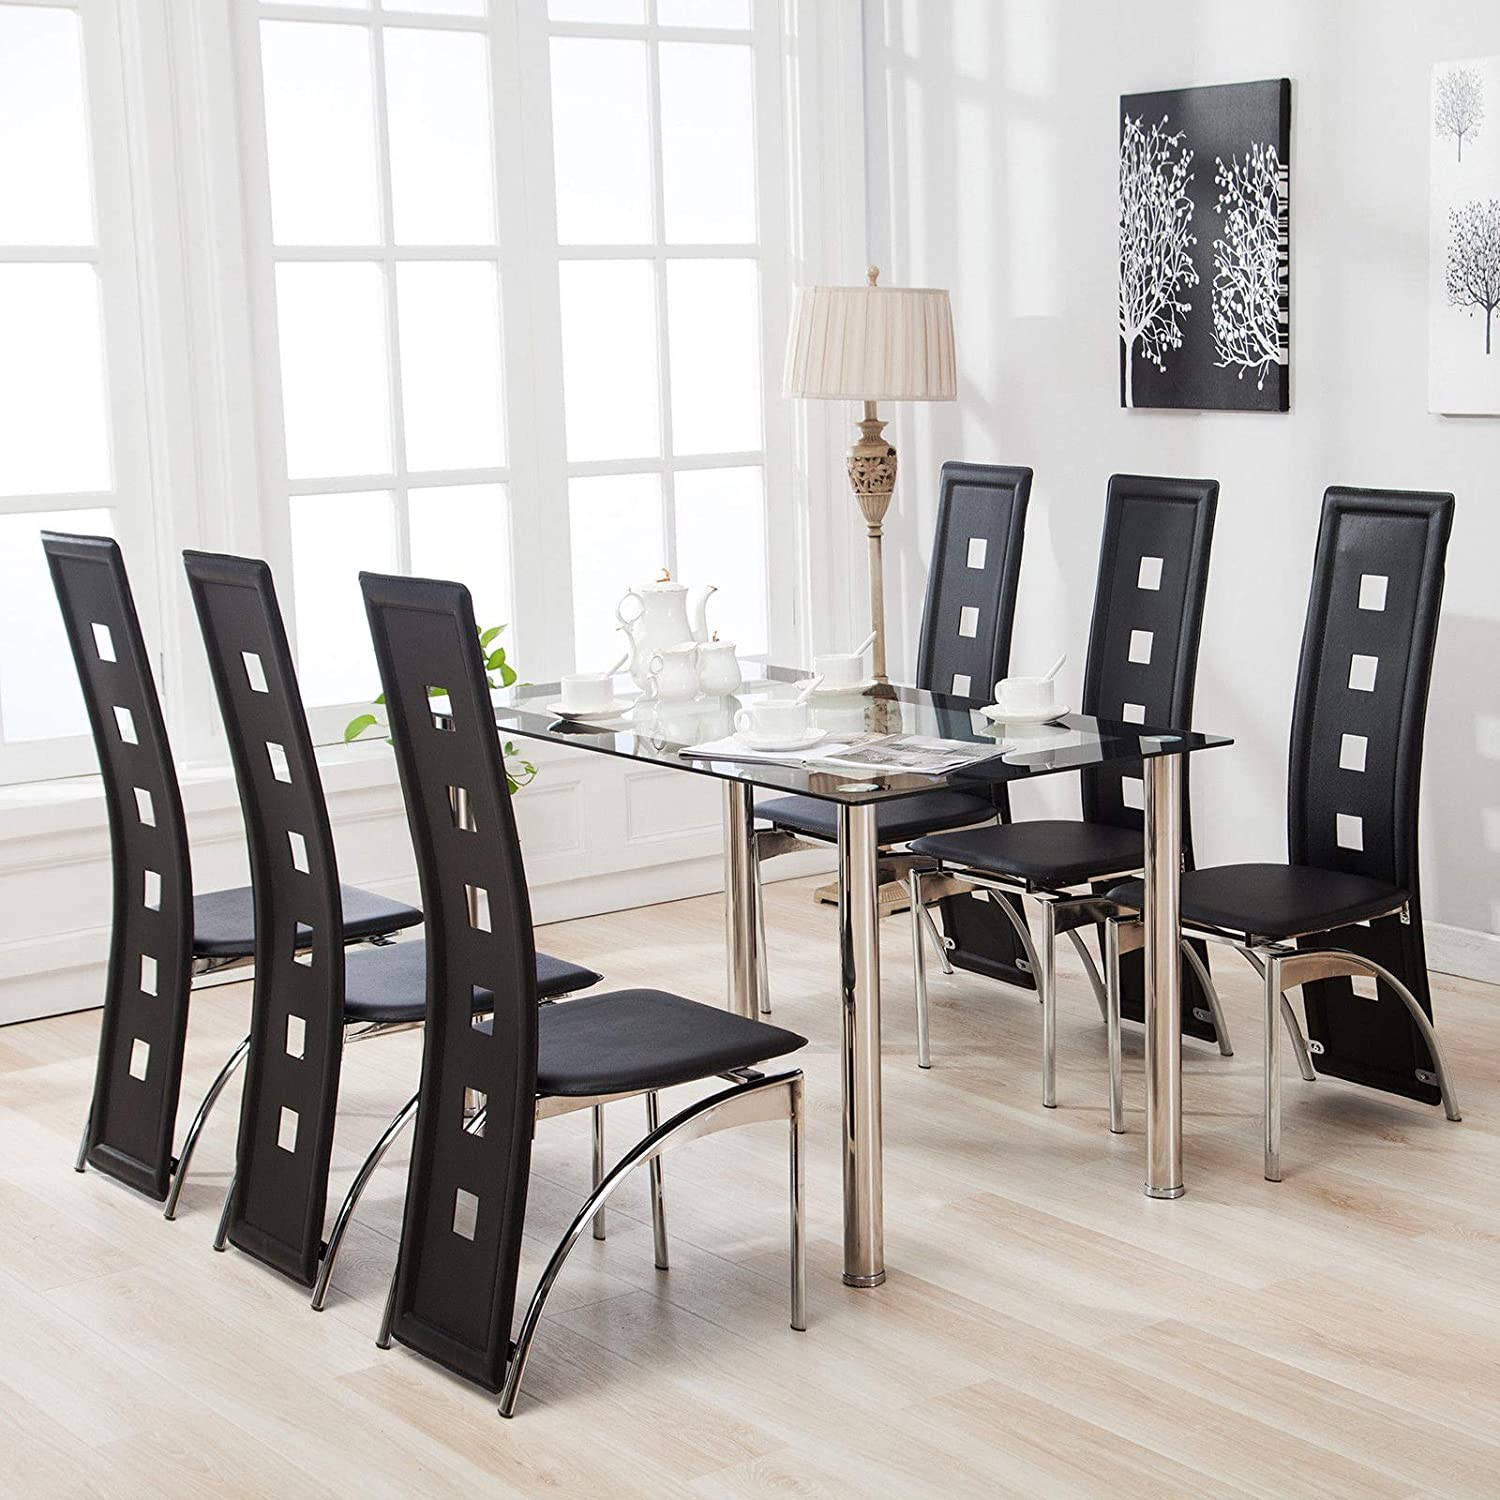 Mecor Glass Dining Table and Chairs Set of 6 and Faux Leather Chairs Dining Kitchen Furniture, Black